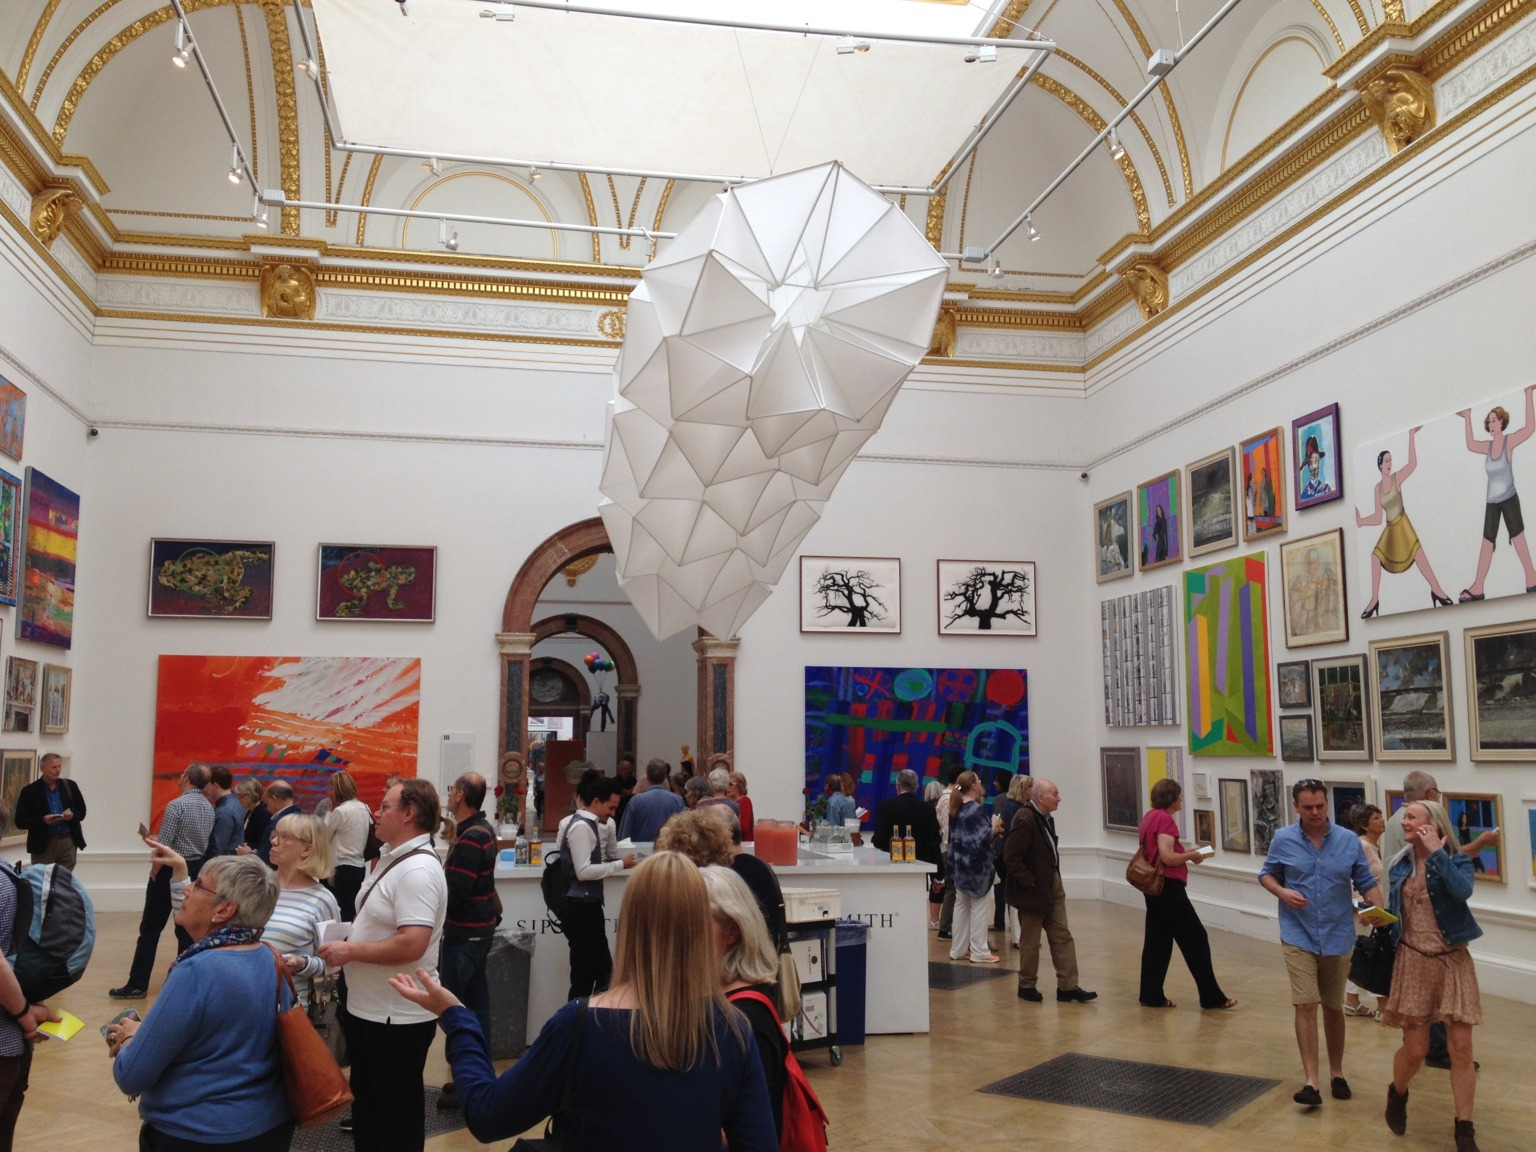 A busy gallery space with may artworks lining the walls and a large sculpture suspended from the ceiling.